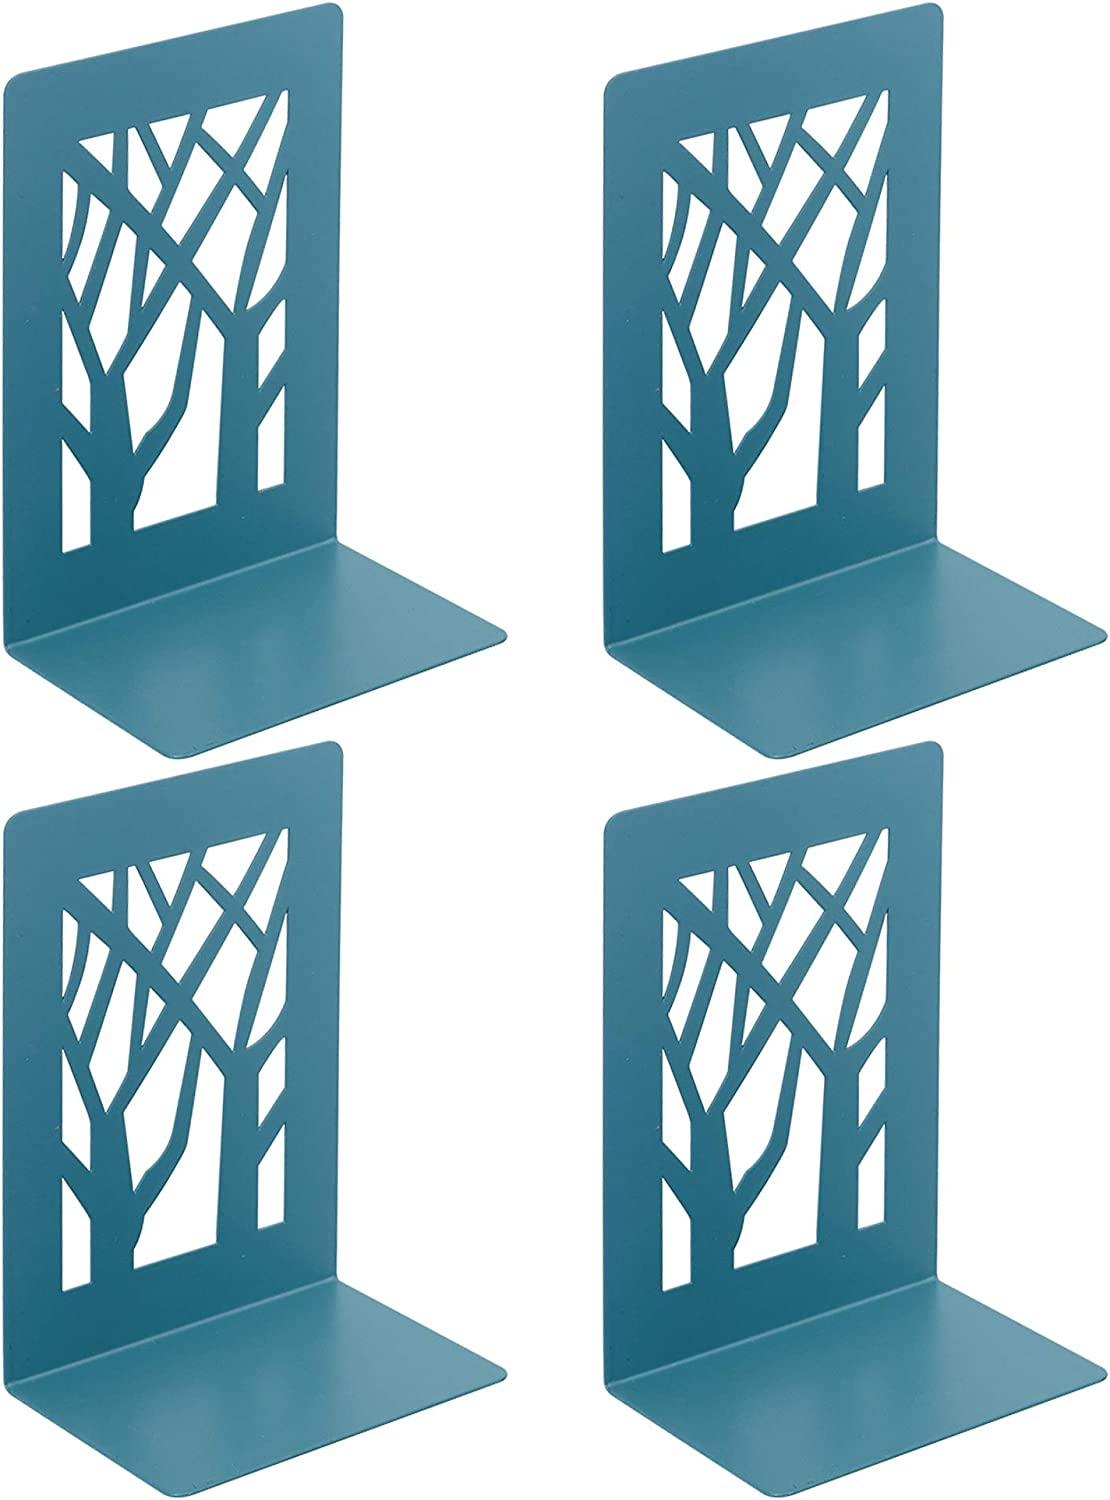 Tngri Bookends Book Ends Shelves Limited time sale Max 66% OFF for